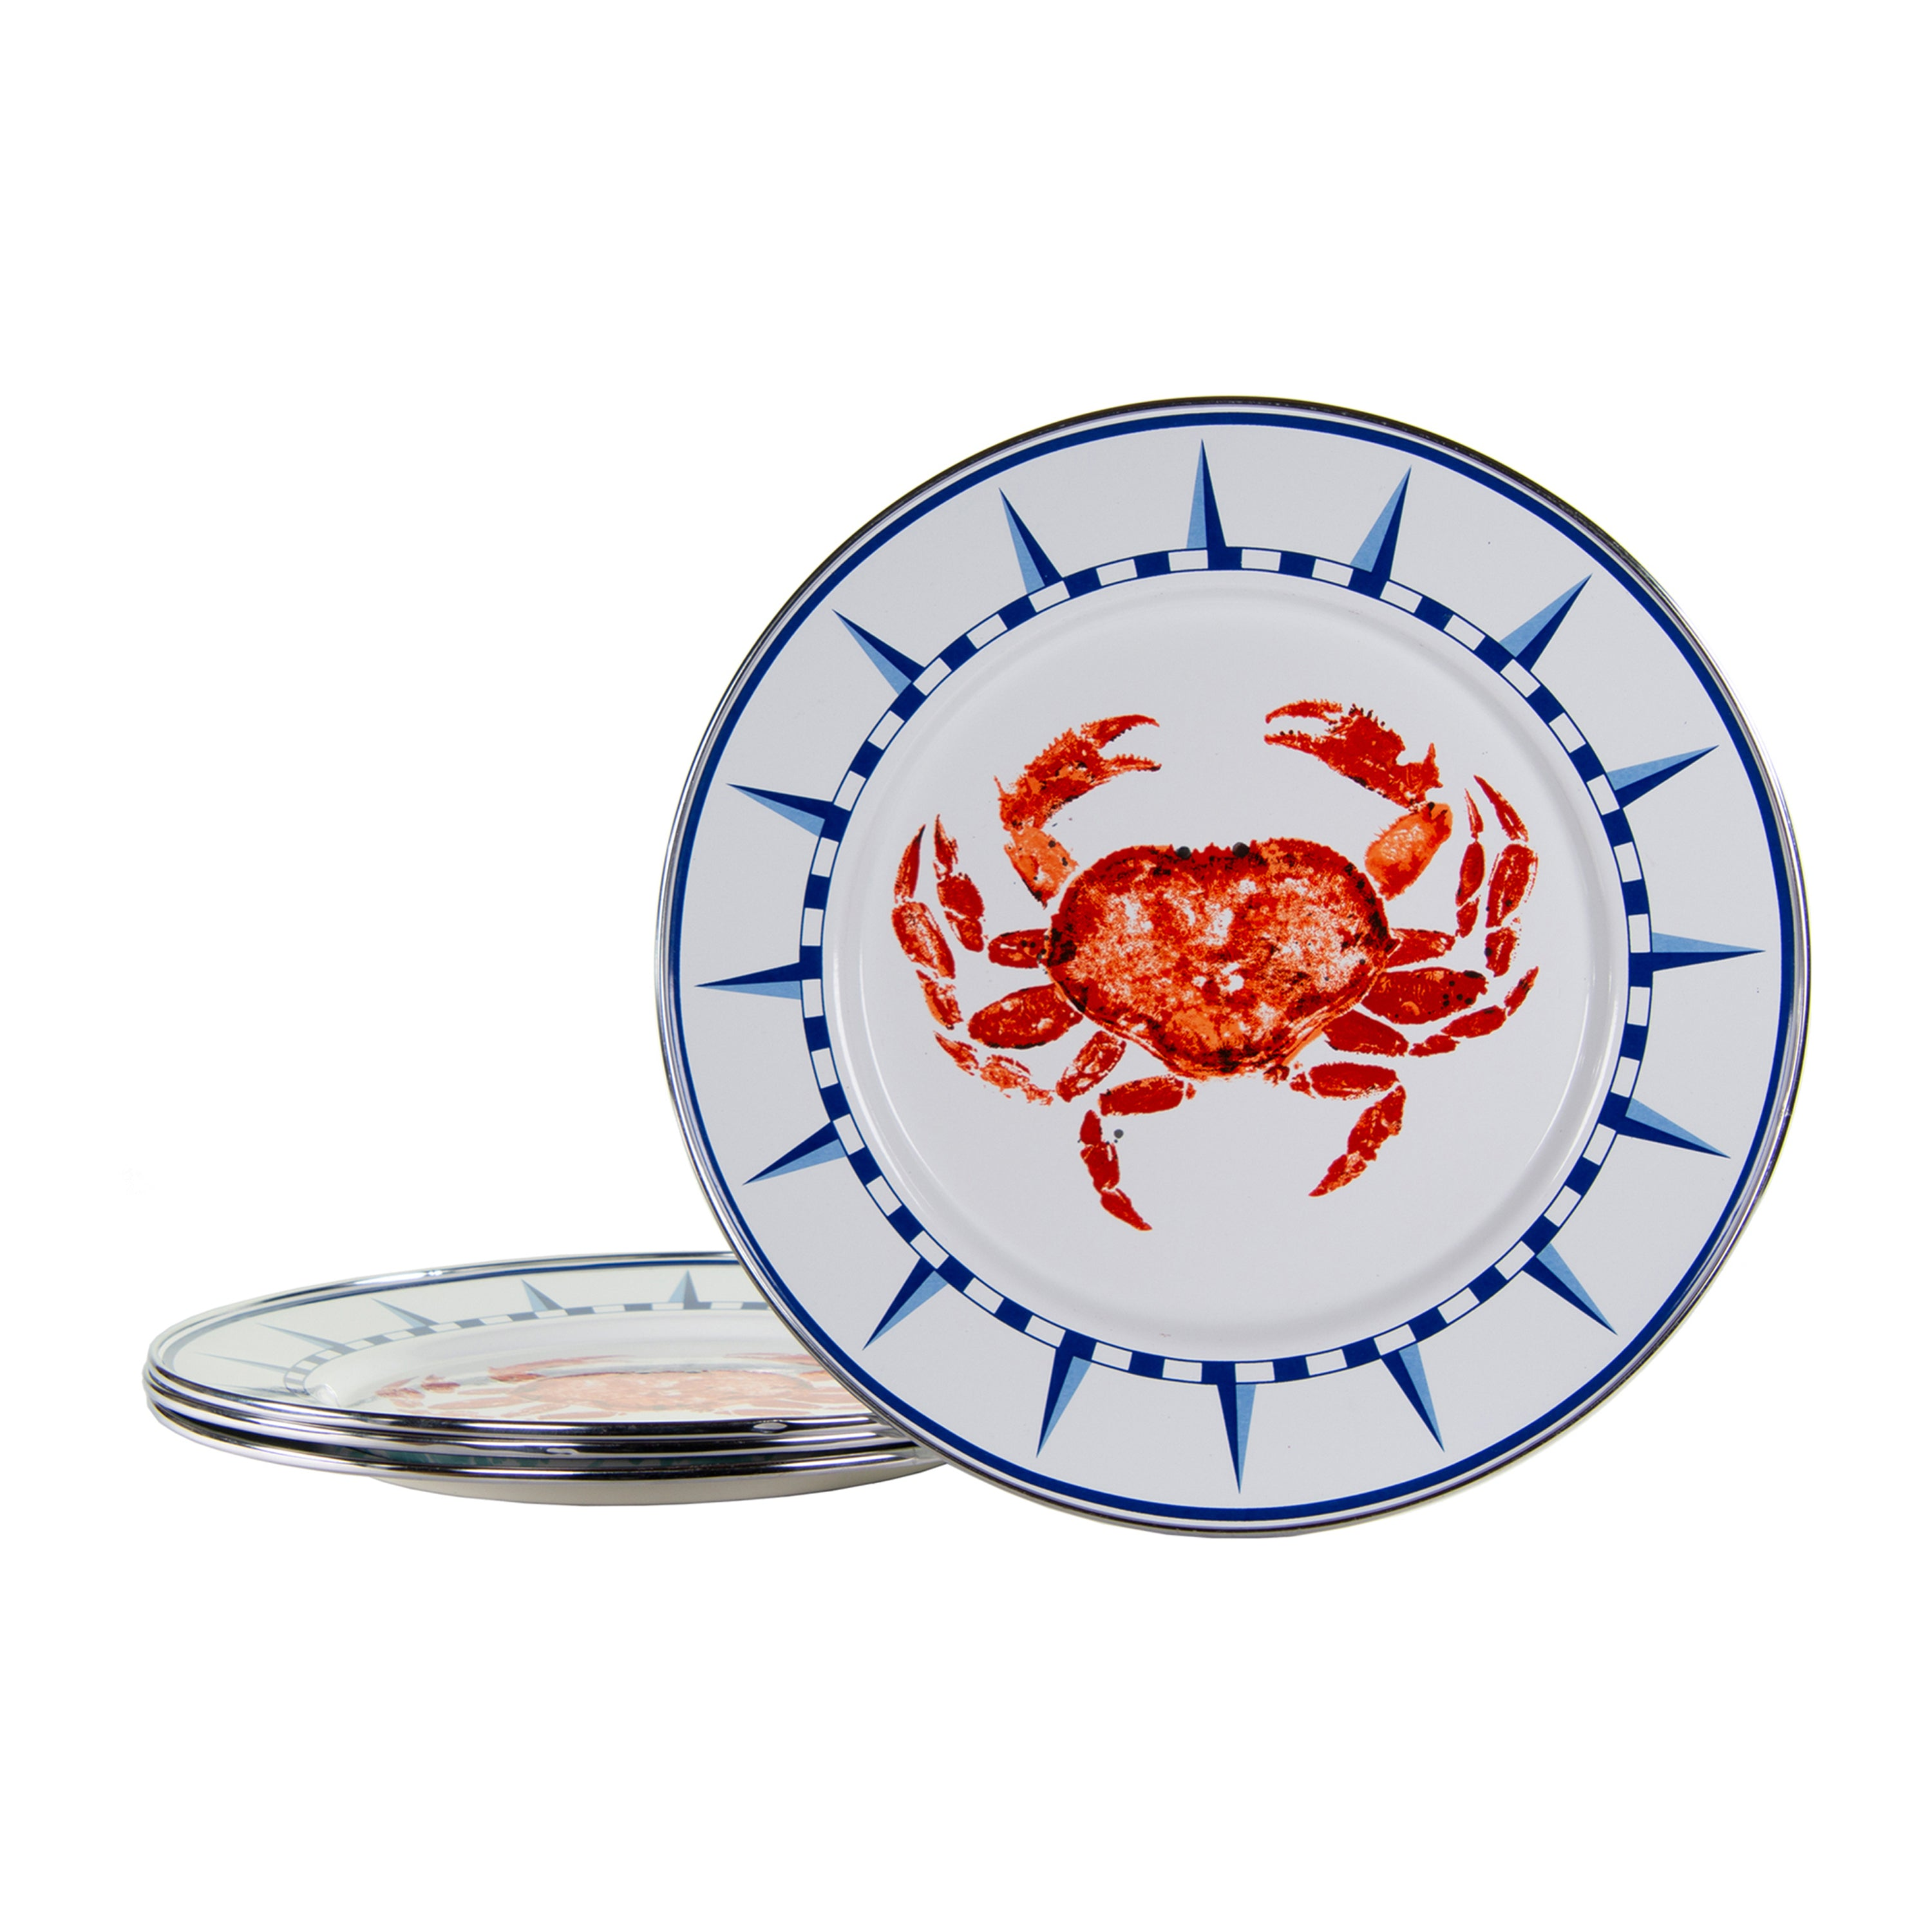 CR07S4 - Set of 4 Crab House Dinner Plates Image 1